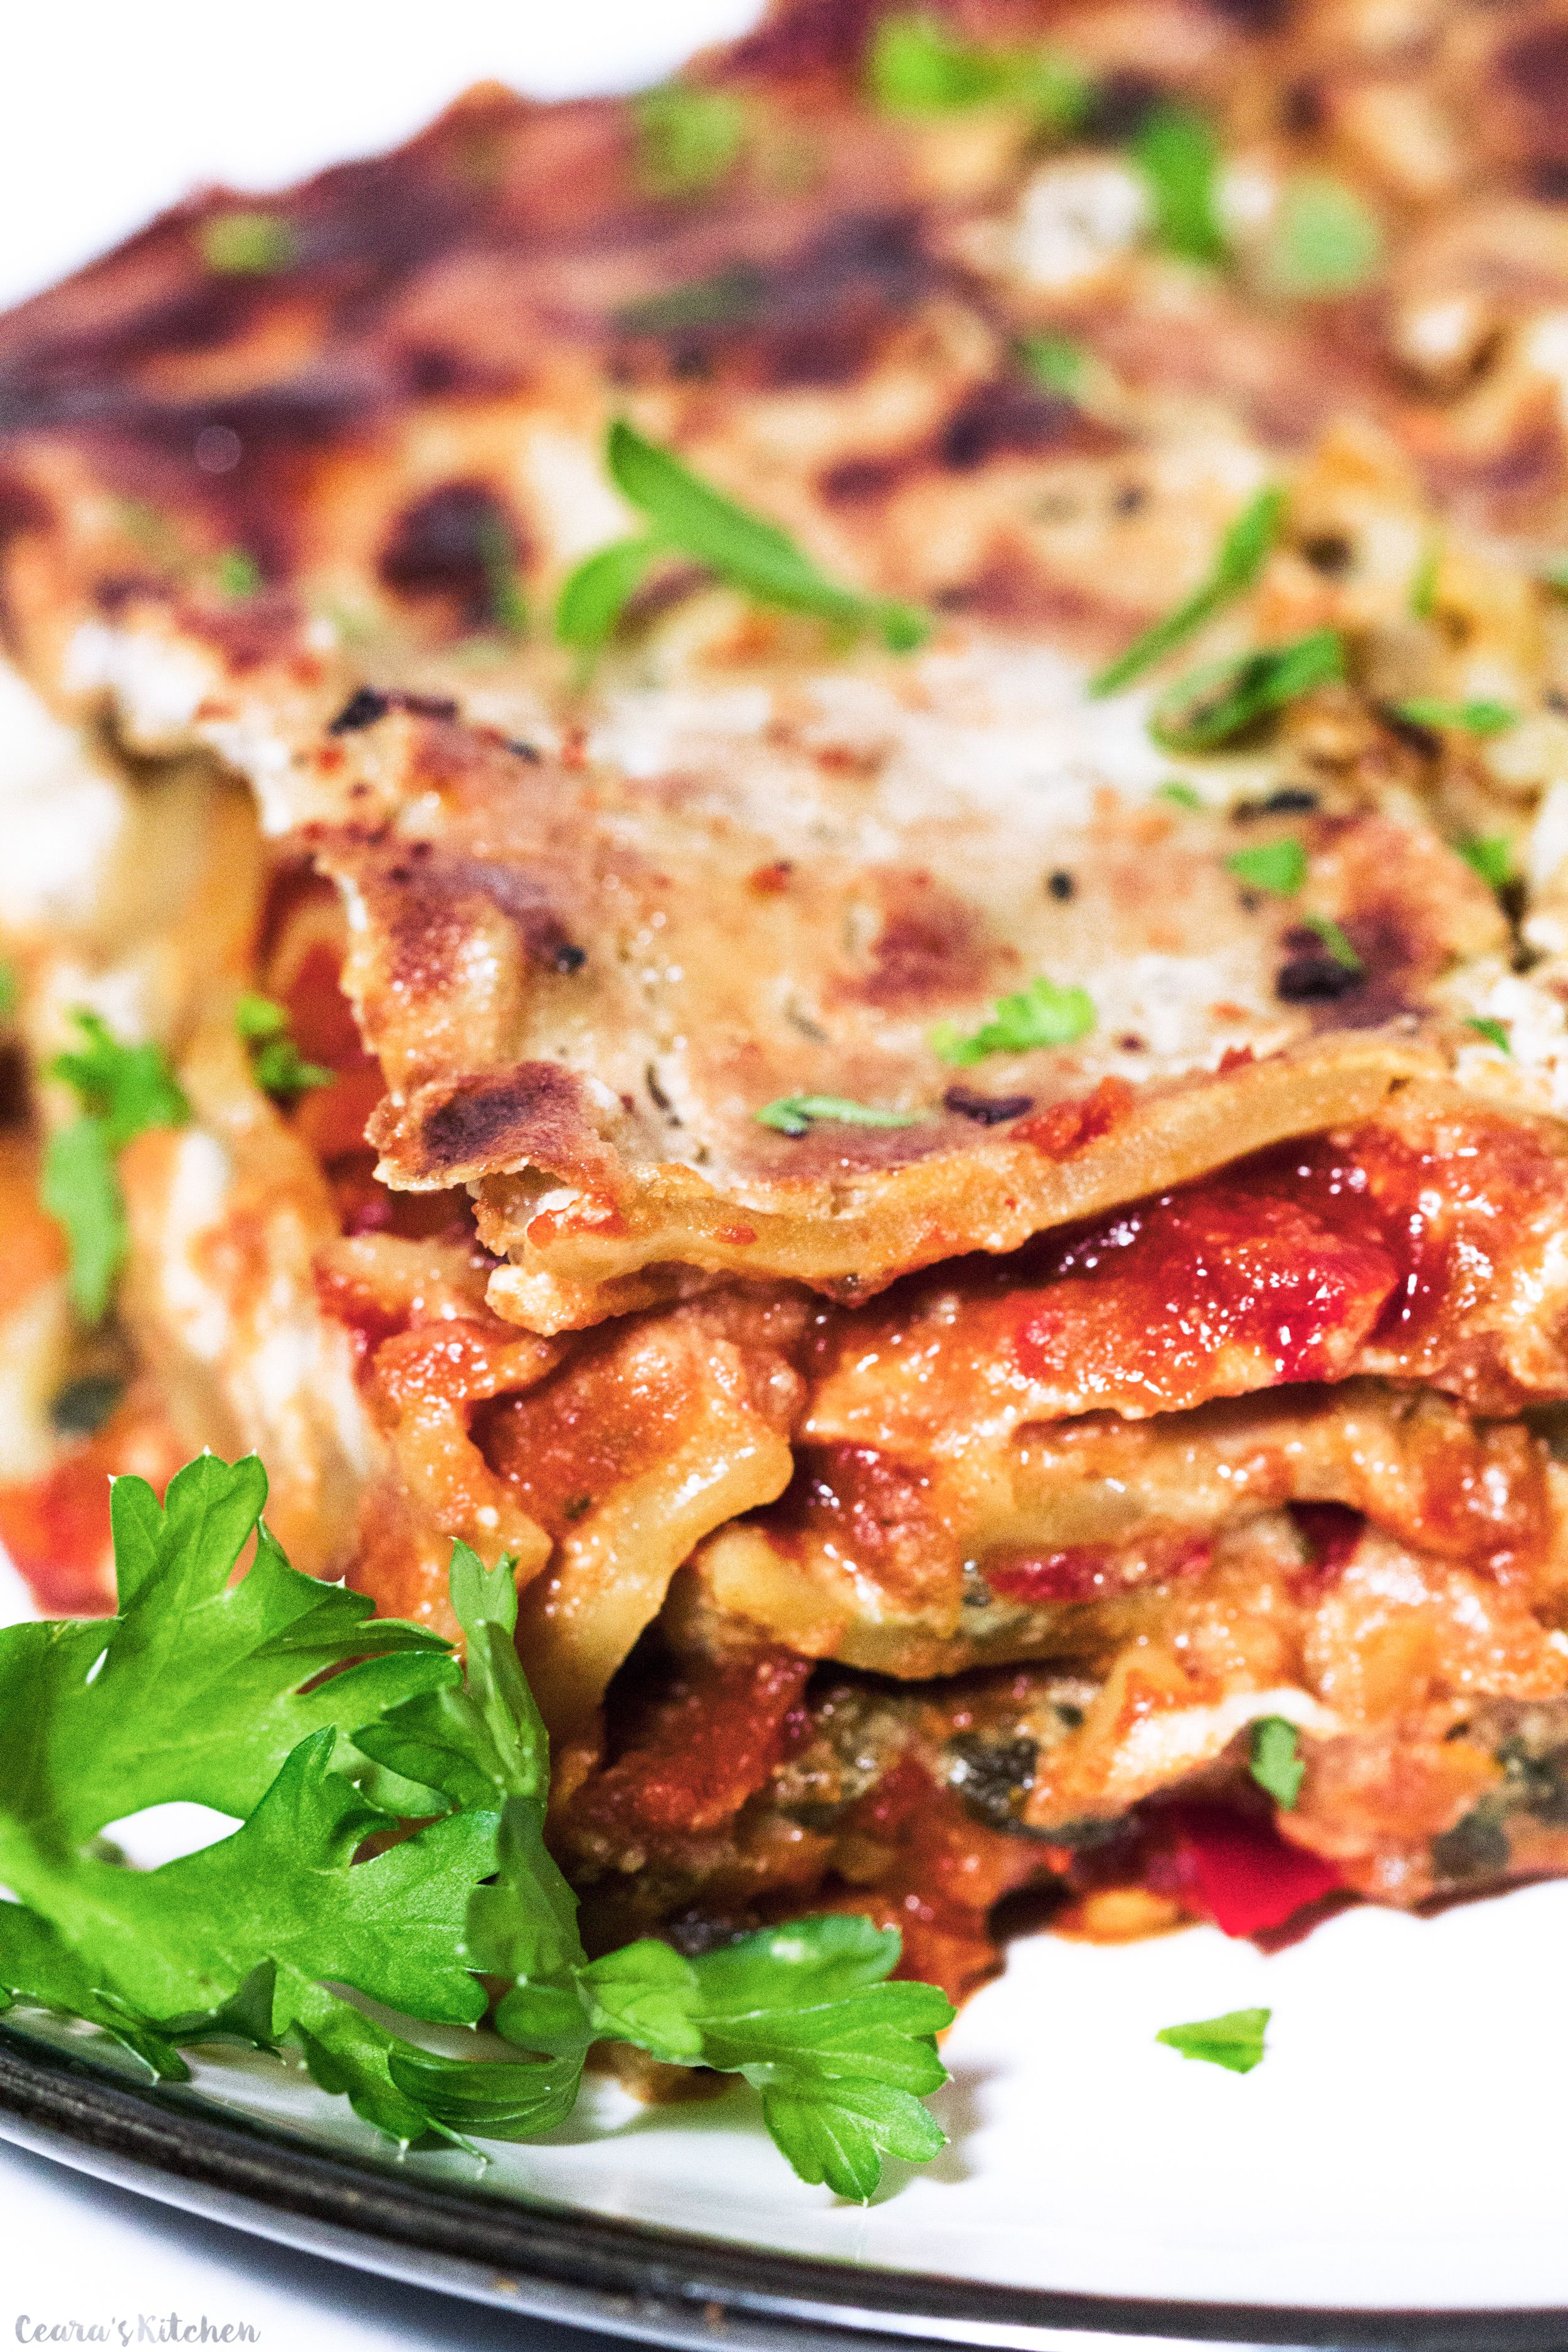 Hearty, cheesy, meaty and comforting #Vegan Lasagna. This lasagna is perfectly layered with a thick and meaty tomato sauce and a cheesy, ricotta-style cheese sauce. One of my favorite recipes to make on the weekend. #Vegetarian #Lasagna #MeatlessMonday